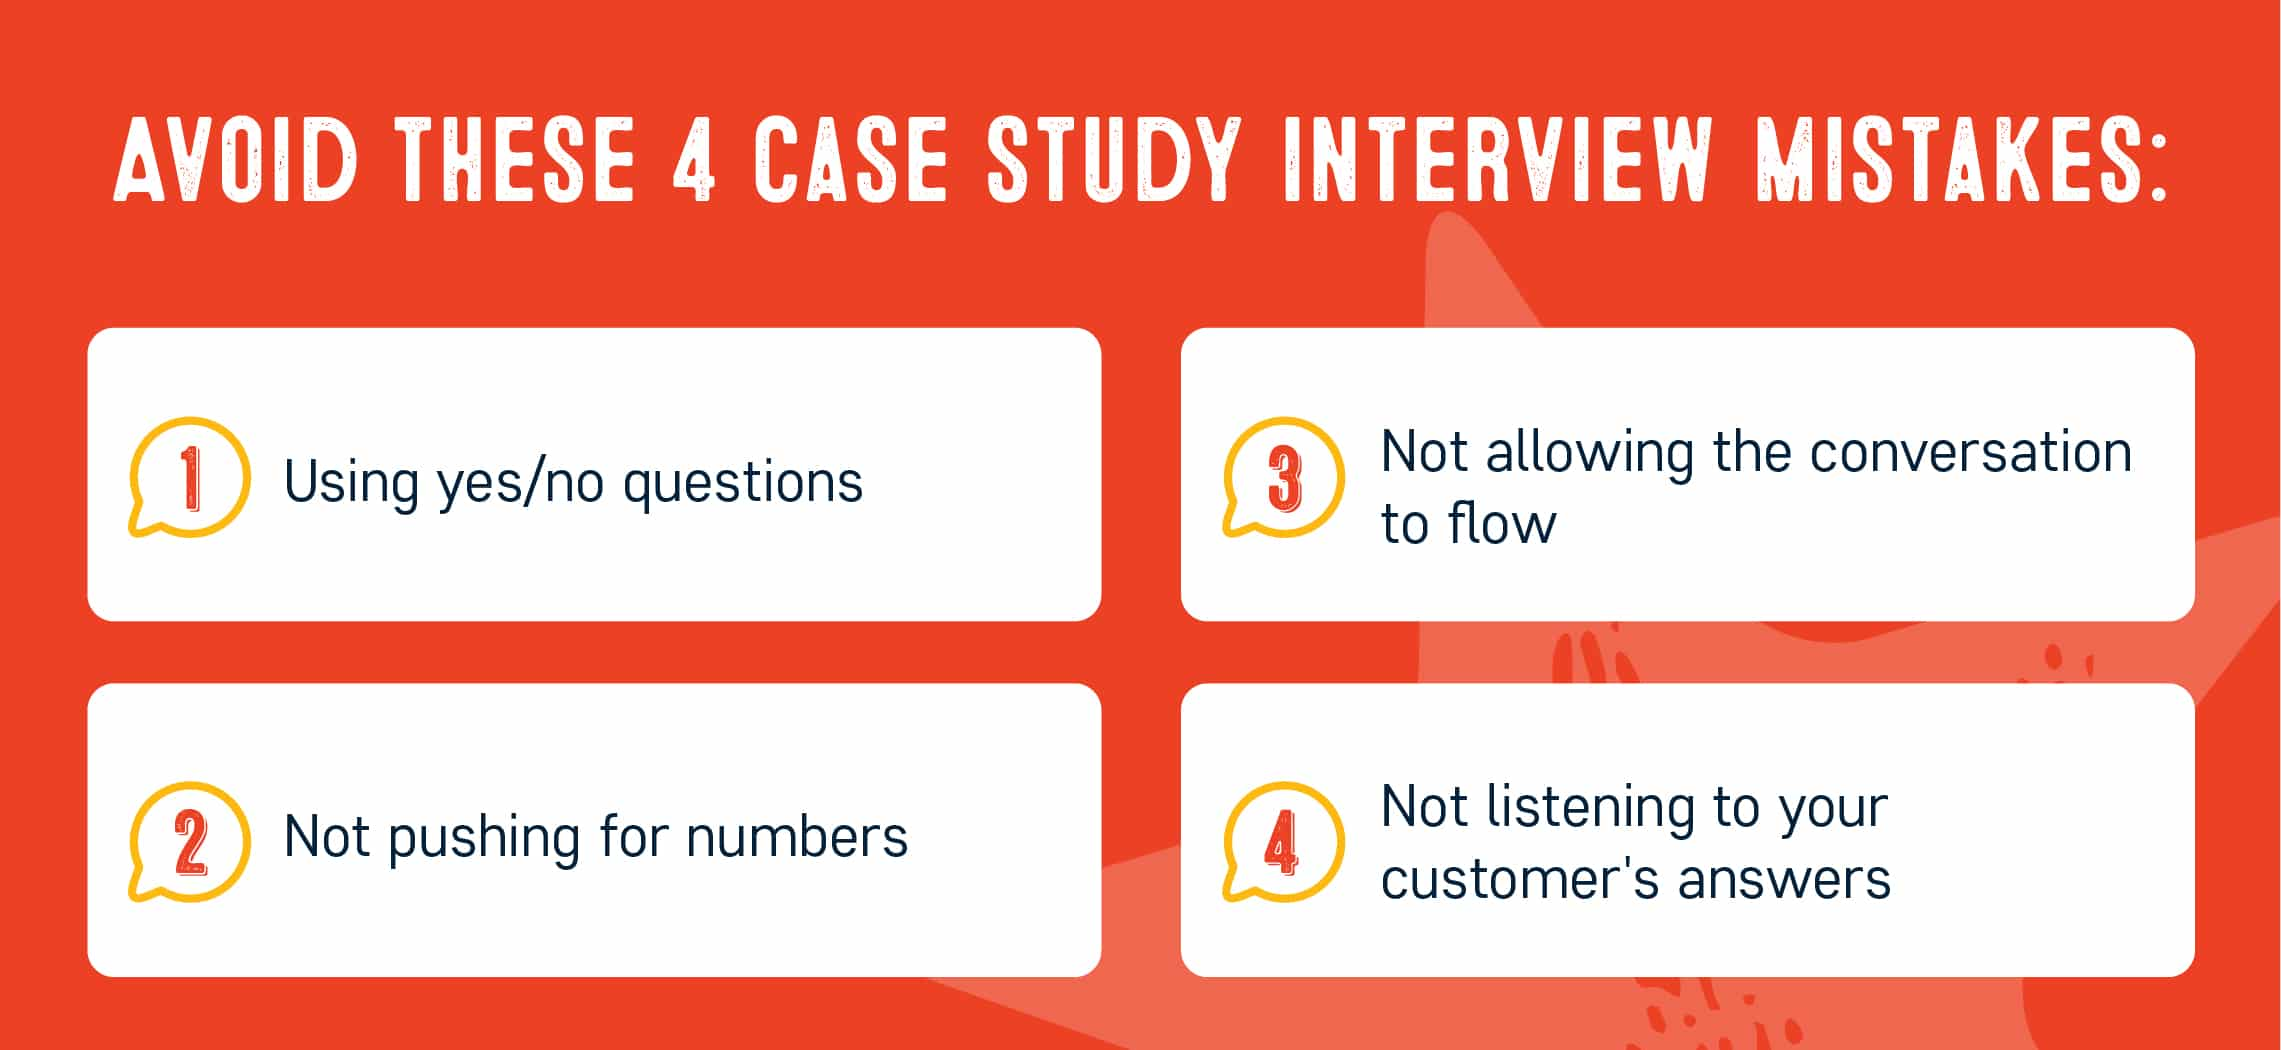 Case study questions: 4 mistakes to avoid